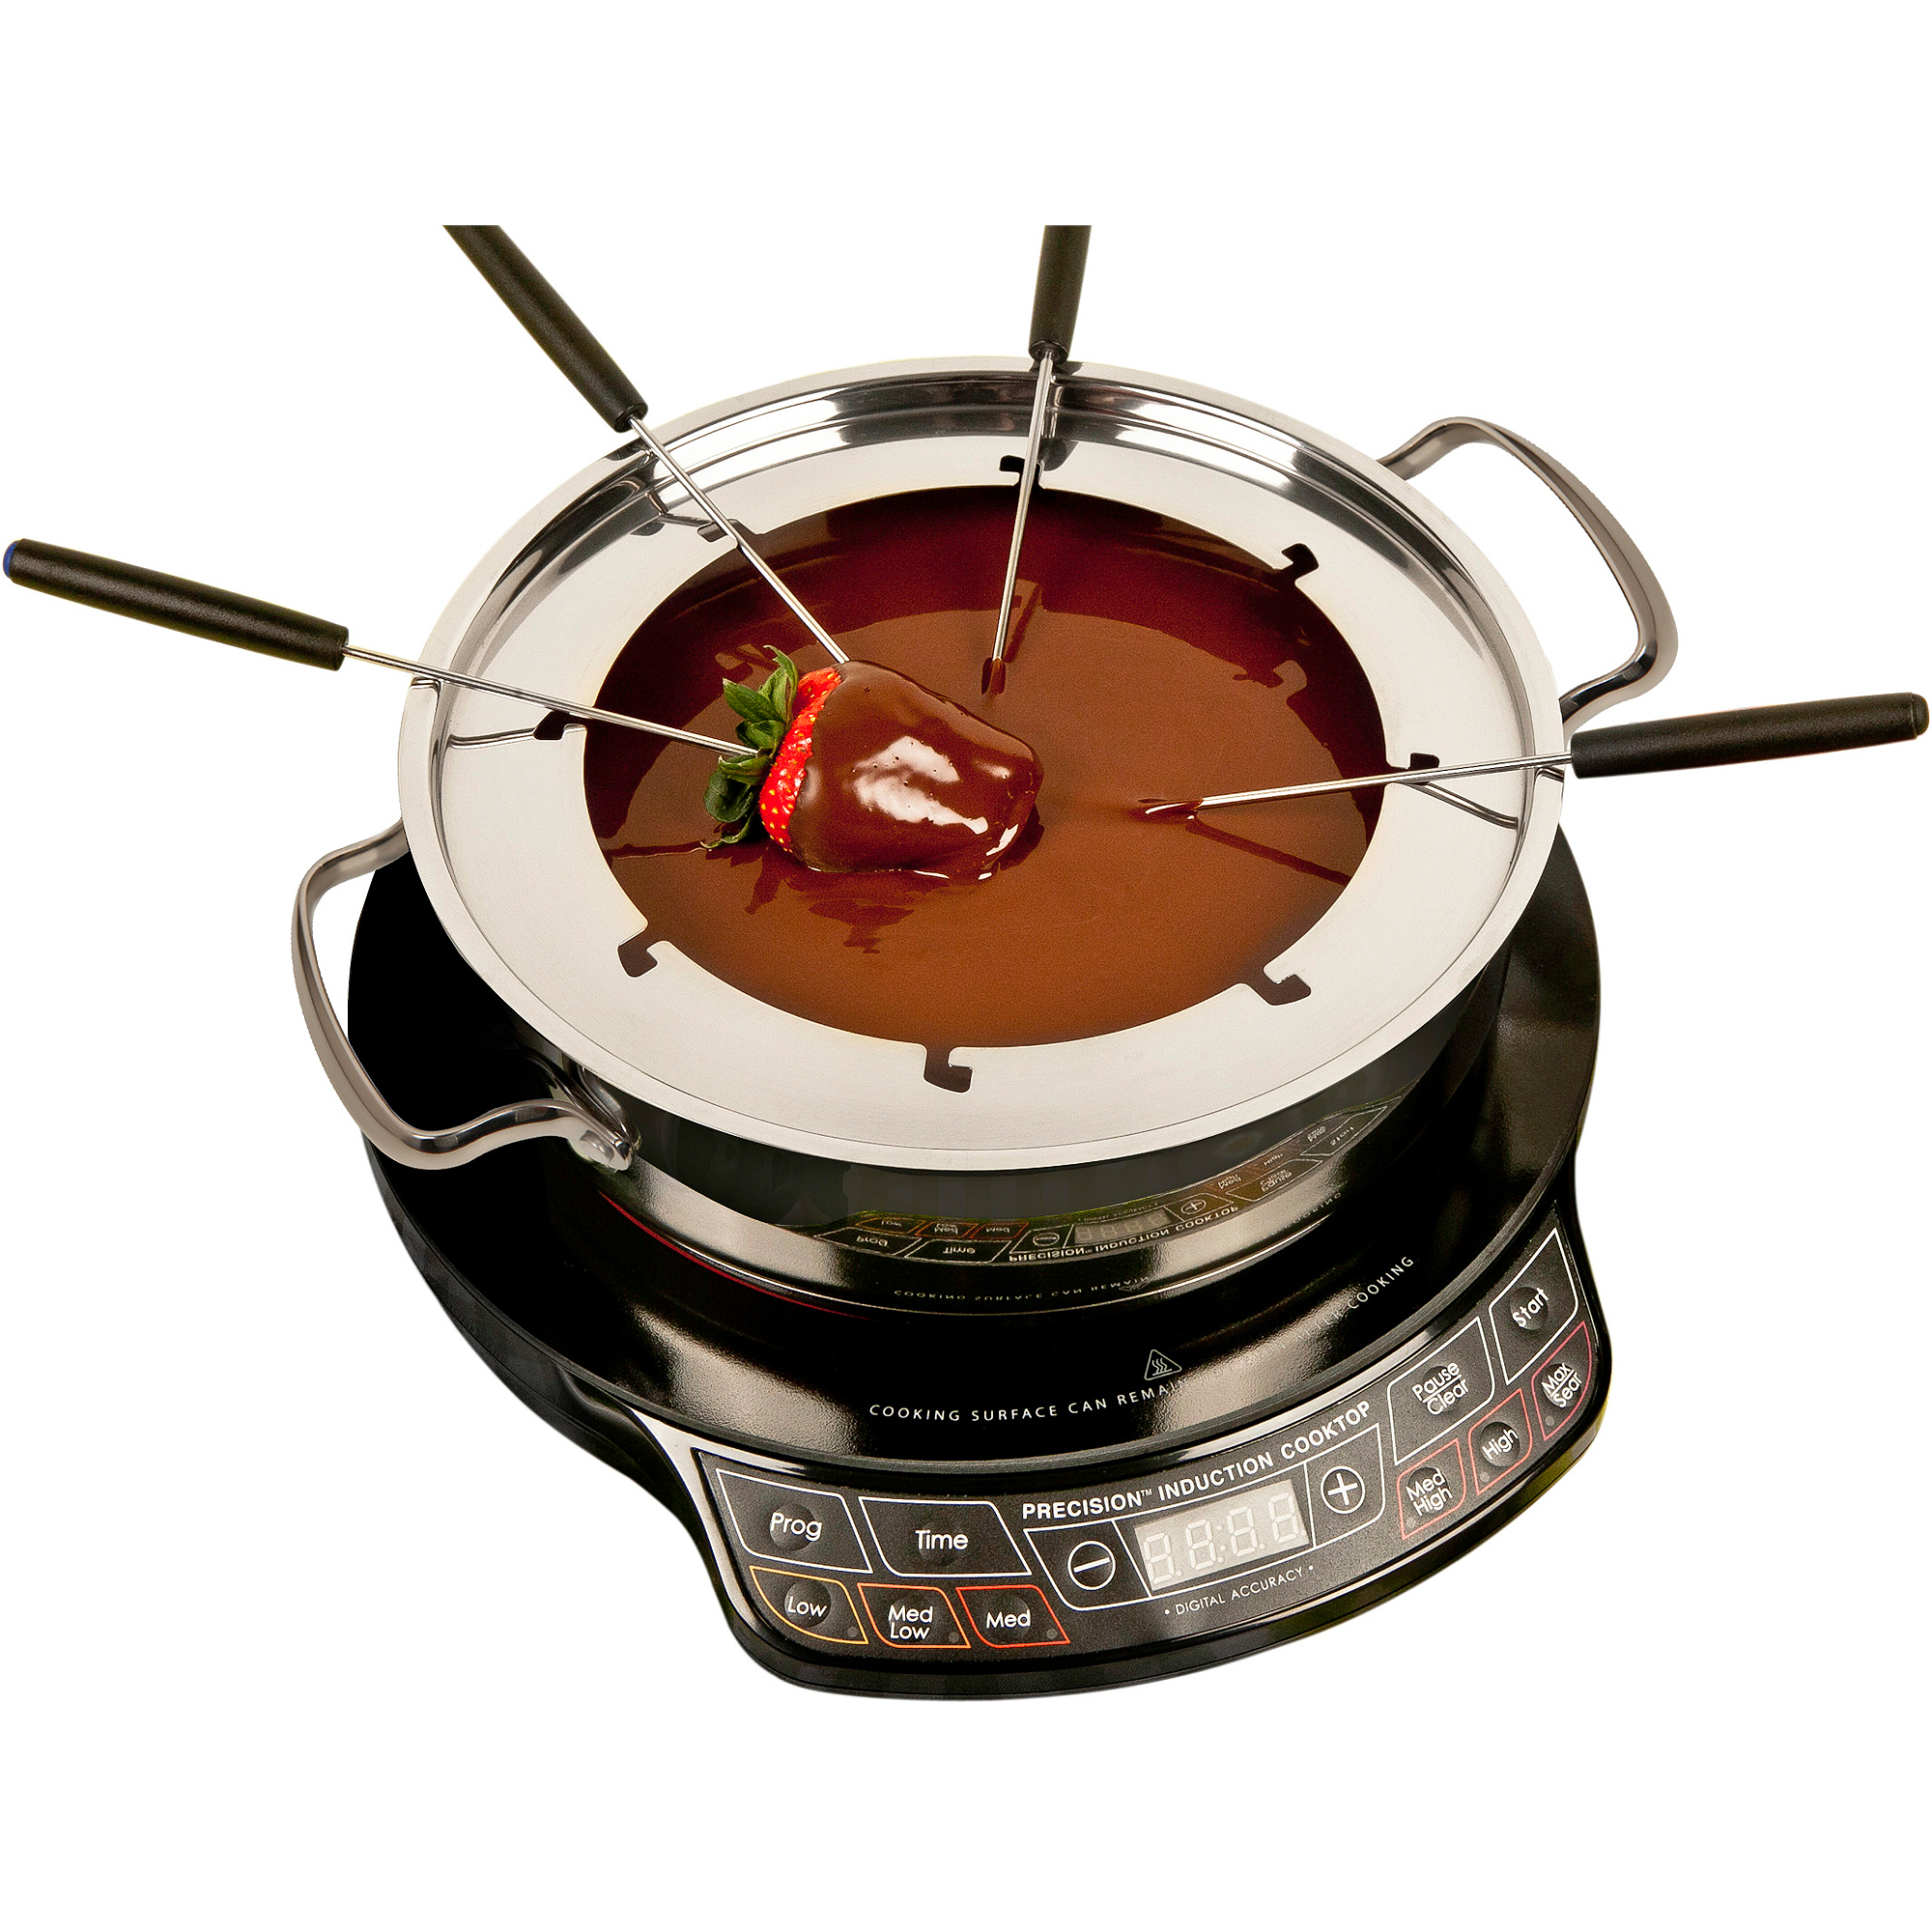 Nuwave Stainless Steel Ultimate Cookware, Silver- Comes with Glass Lid by Telebrands